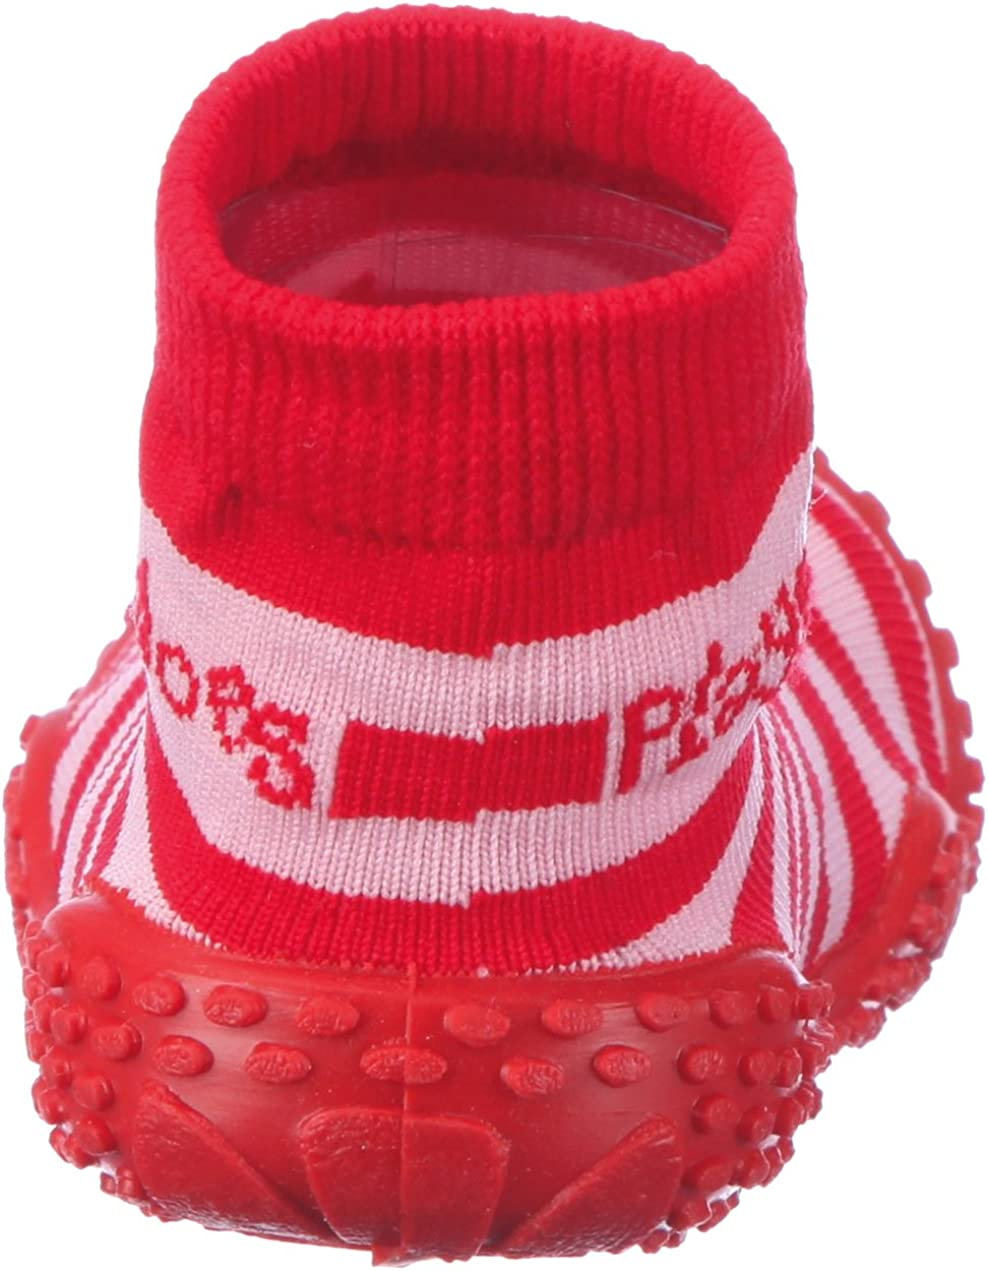 Playshoes Unisex Kids/' Aqua Socks with Uv Protection Stripes Water Shoes